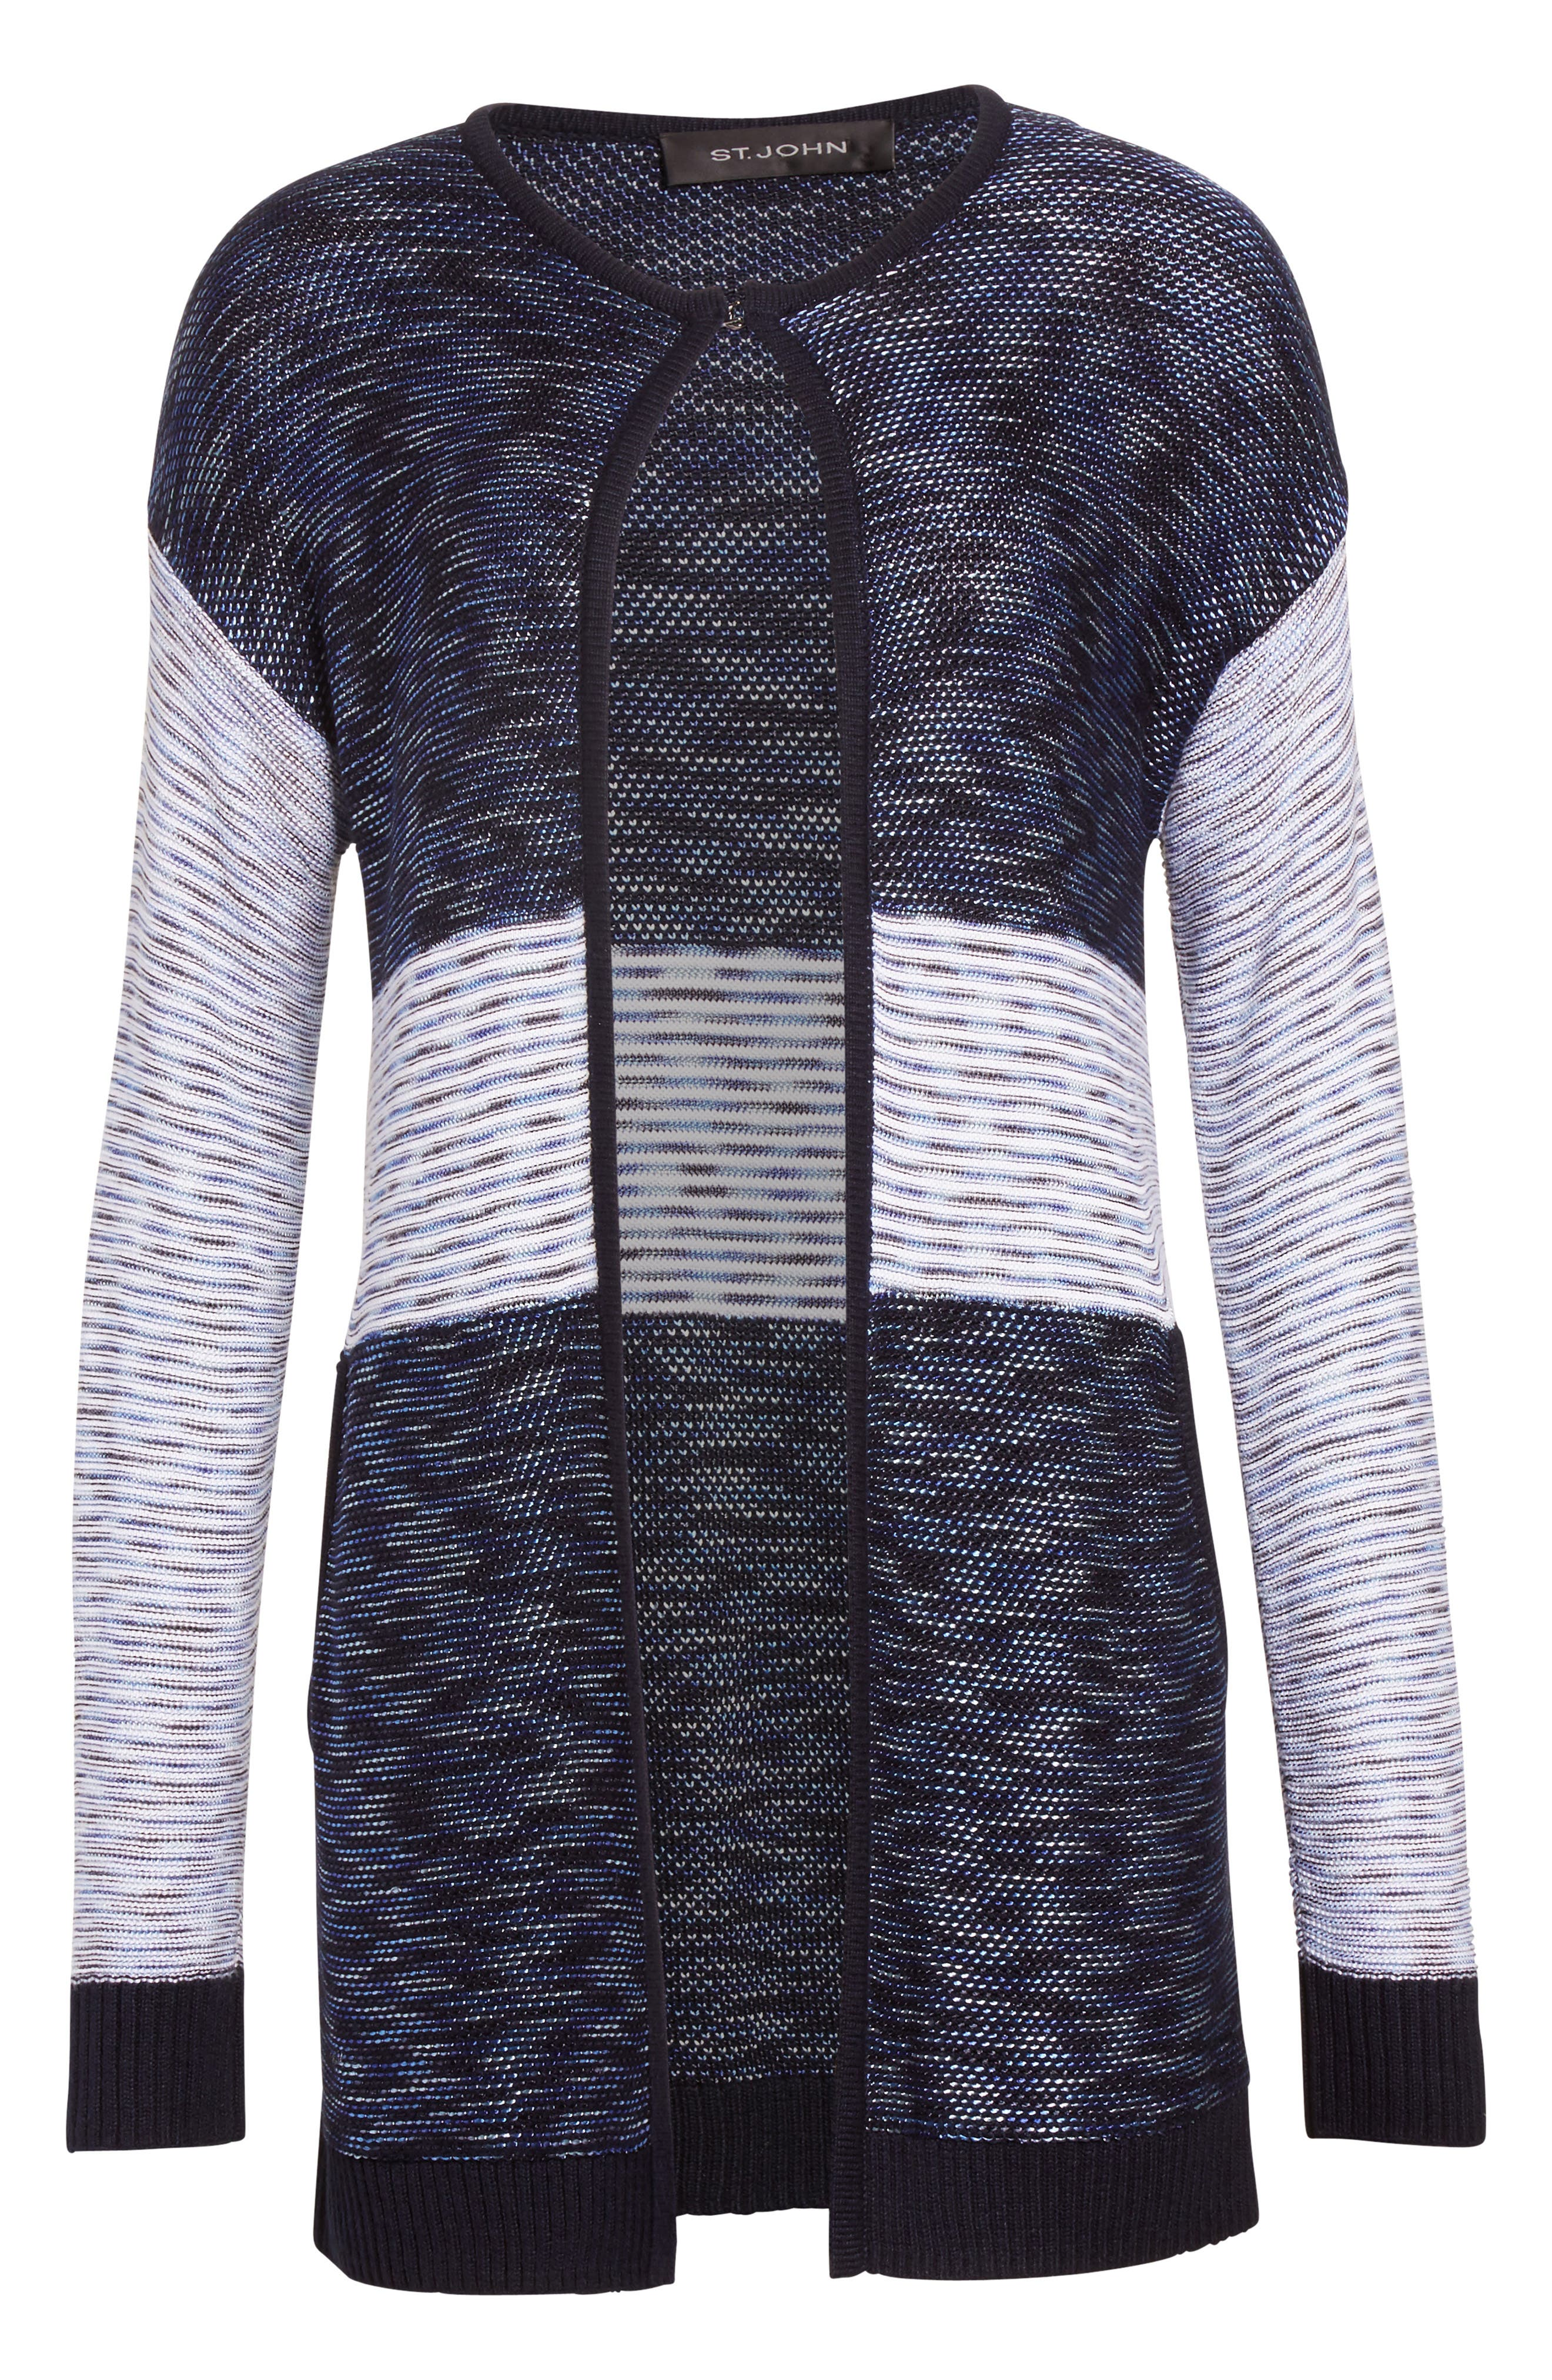 Chambray Effect Links Knit Cardigan,                             Alternate thumbnail 7, color,                             Bianco/ Navy Multi